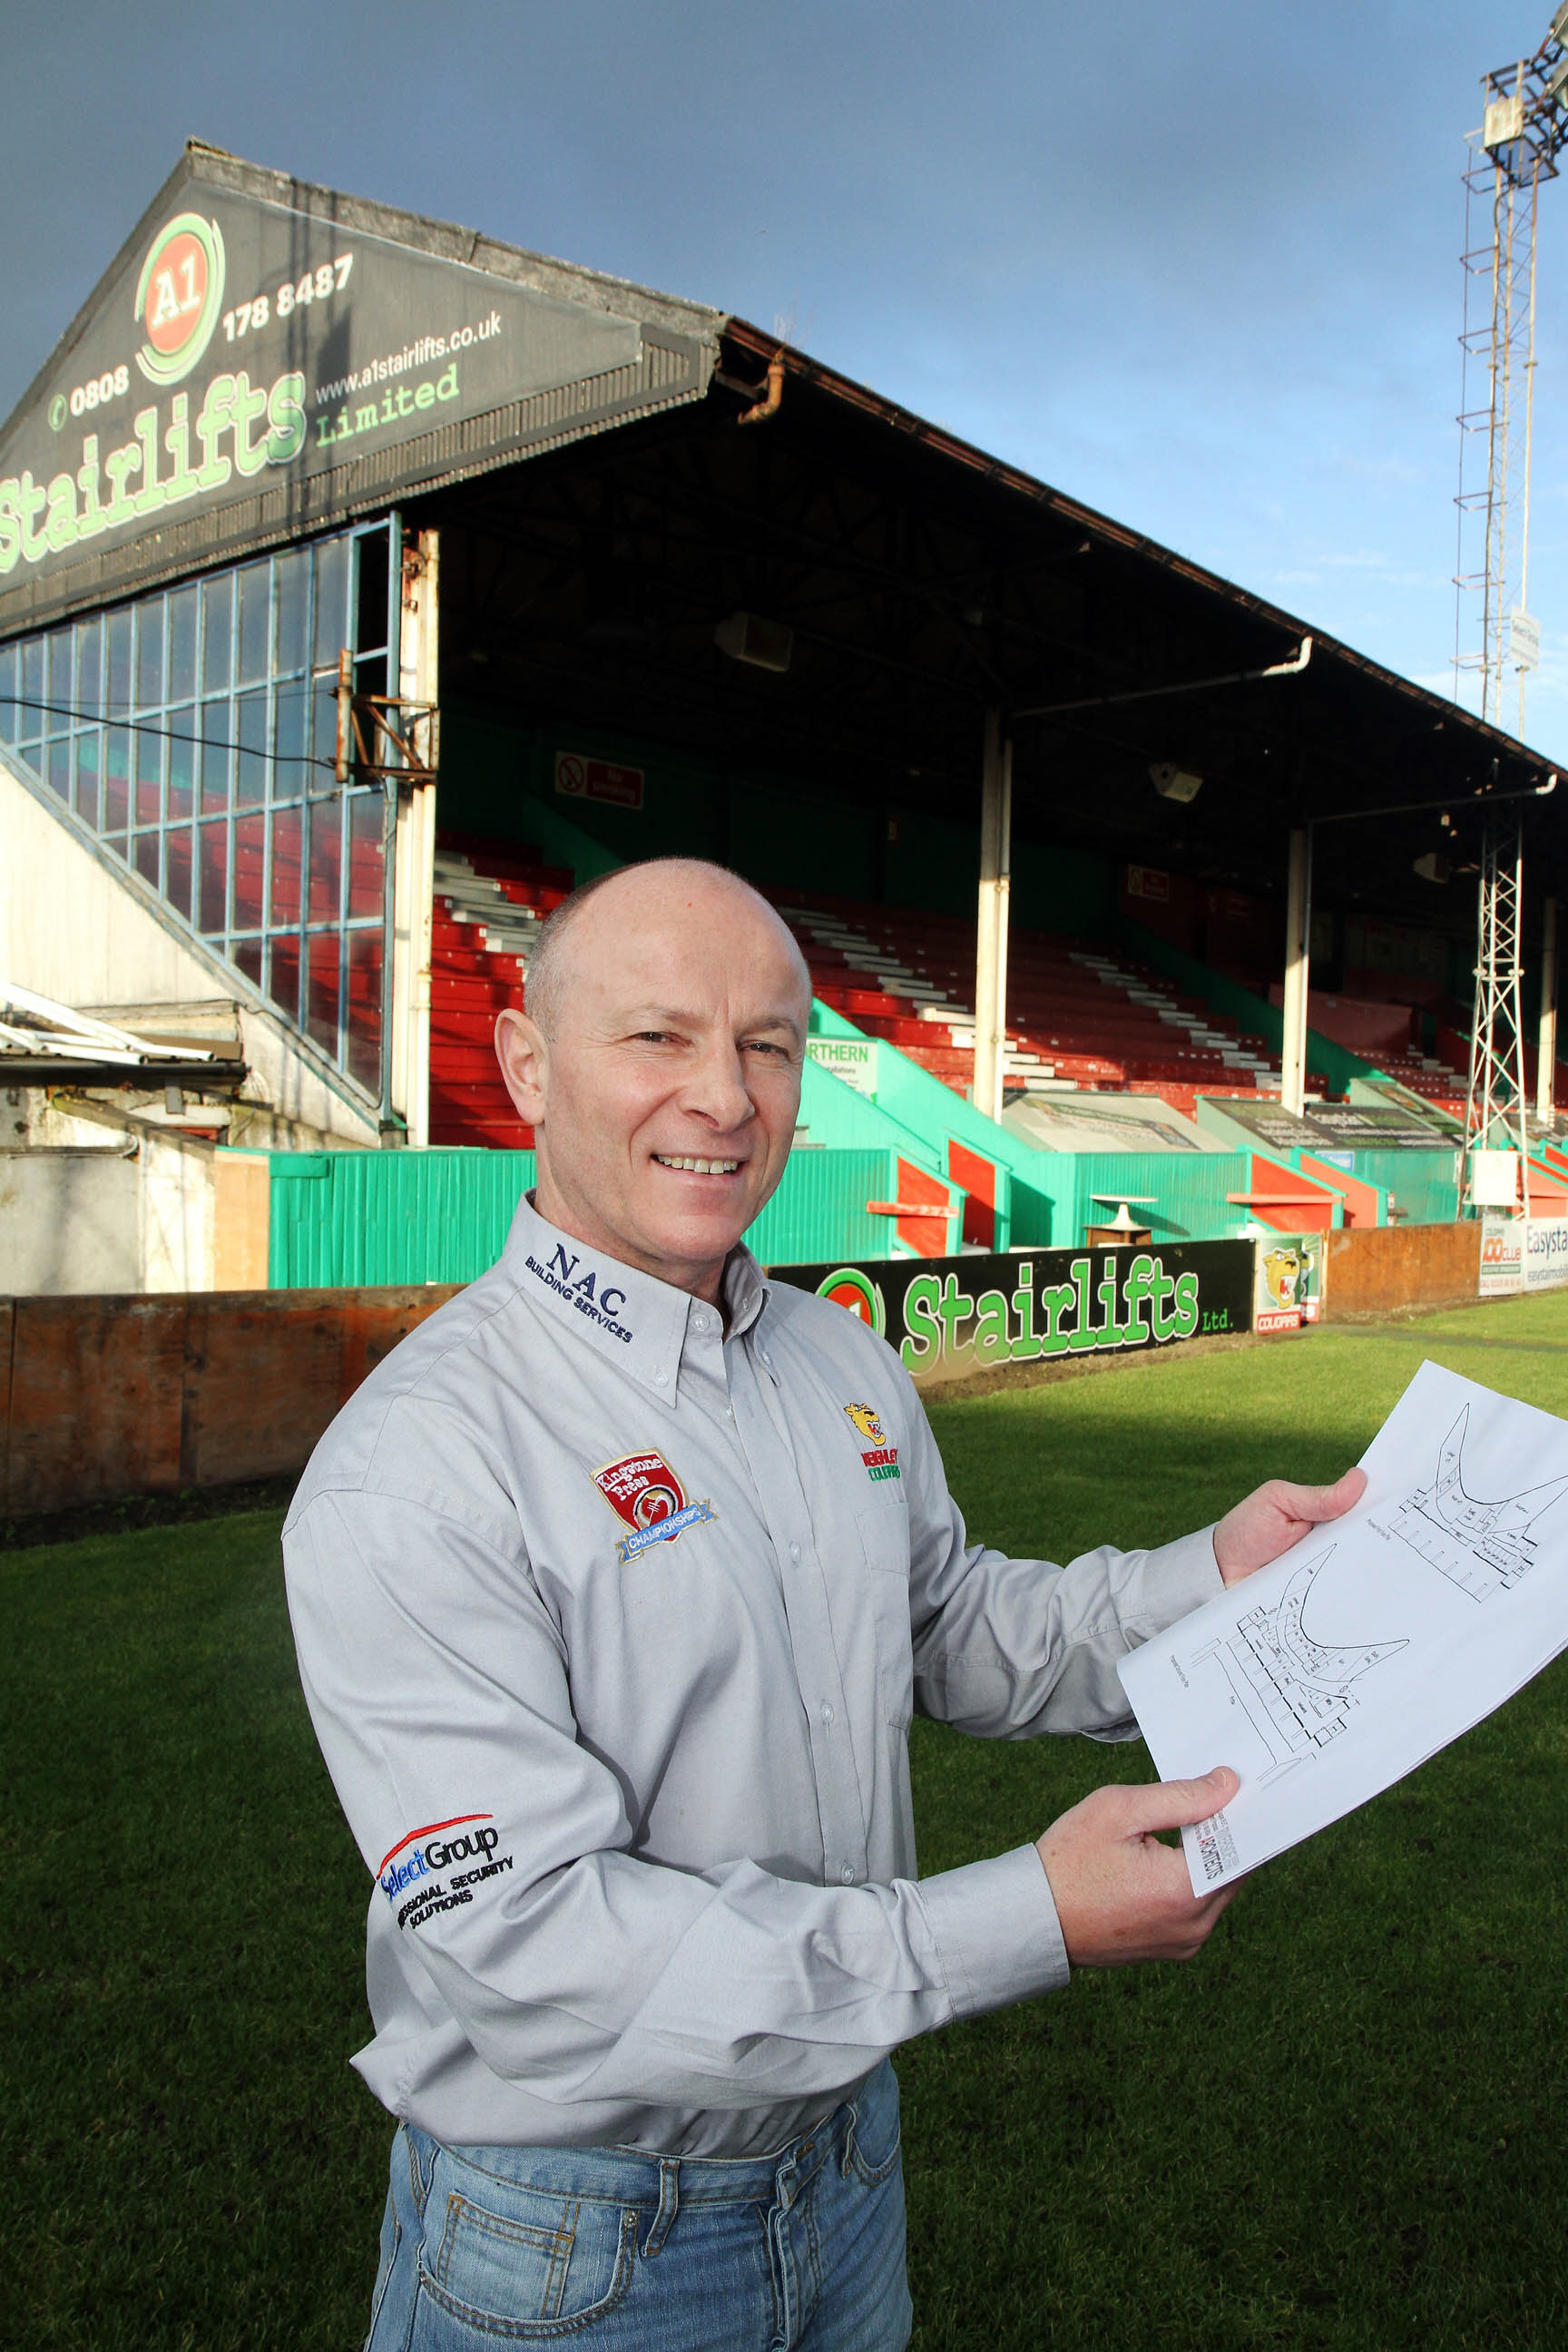 Chairman Gary Fawcett with the plans